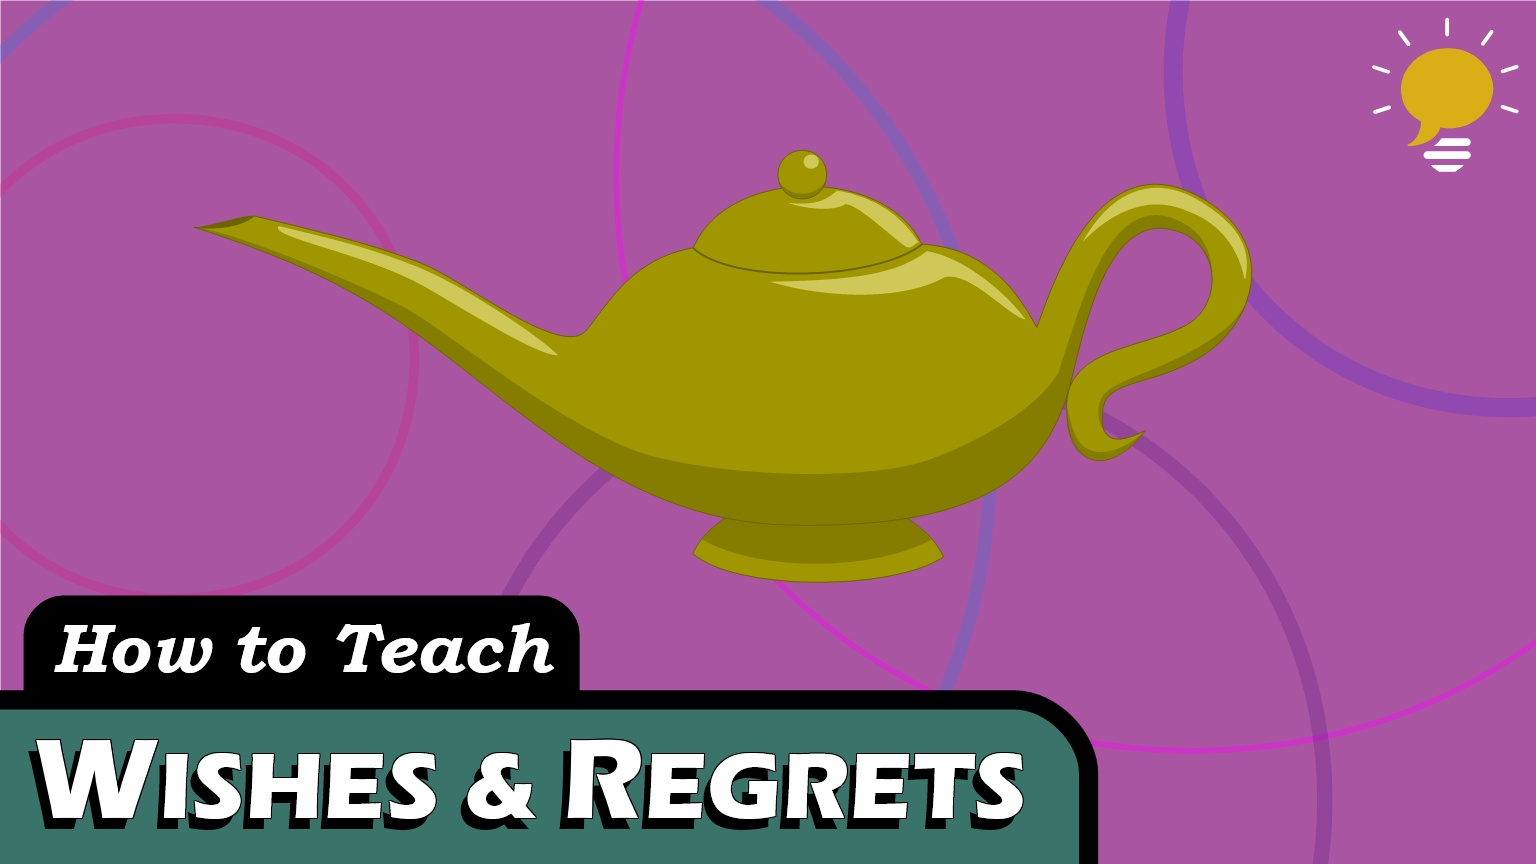 Wishes & Regrets - Sometimes we talk about things that aren't true … maybe how we wish things were or had been different. For that, we need a slightly different grammar structure.